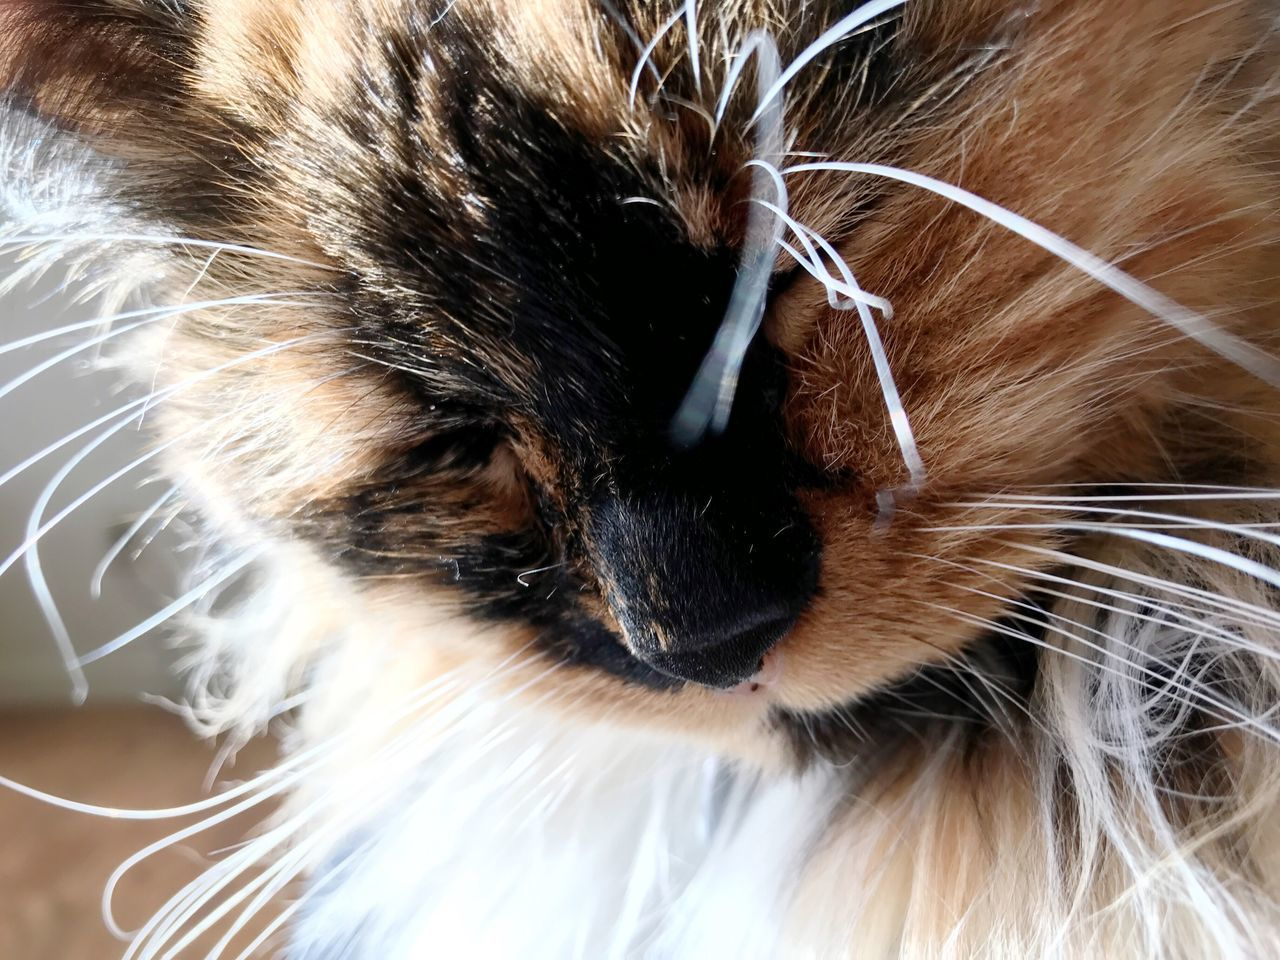 Domestic Cat Domestic Animals Pets Feline Mammal One Animal Animal Themes Close-up Whisker Cat Tortoiseshell Cat No People Indoors  Cat Portrait Cat Nose Sleep Cat Cat In Sunbeam